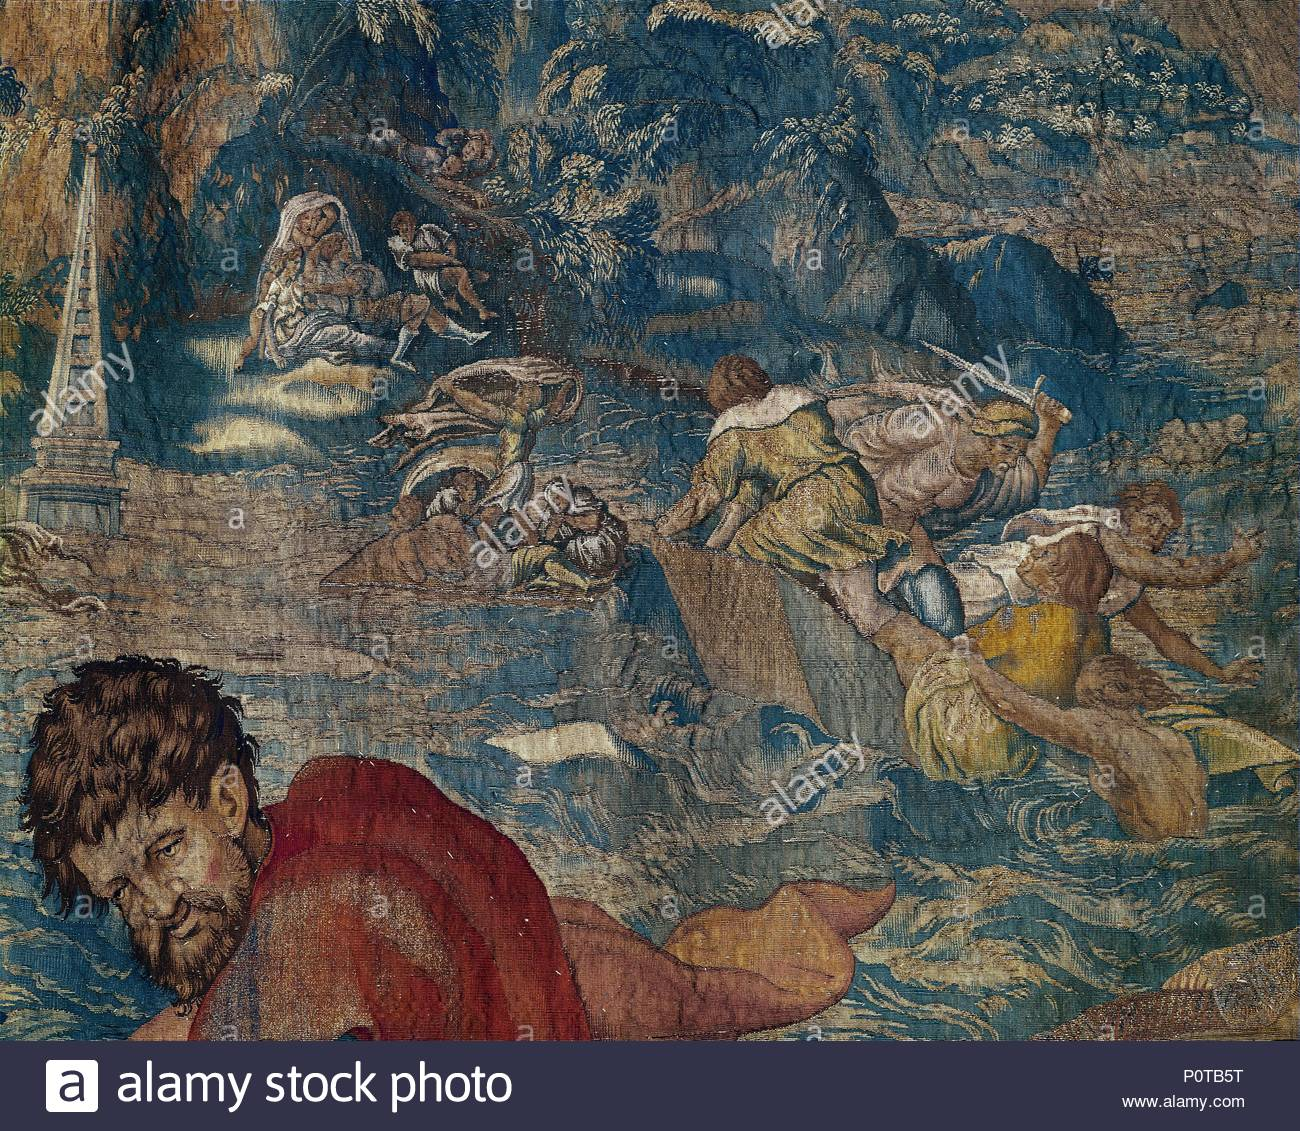 The Noah-Tapestry. People seeking shelter and drowning. Author: Michiel  Coxie (1499-1592). Location: Wawel Castle, Cracow, Poland.